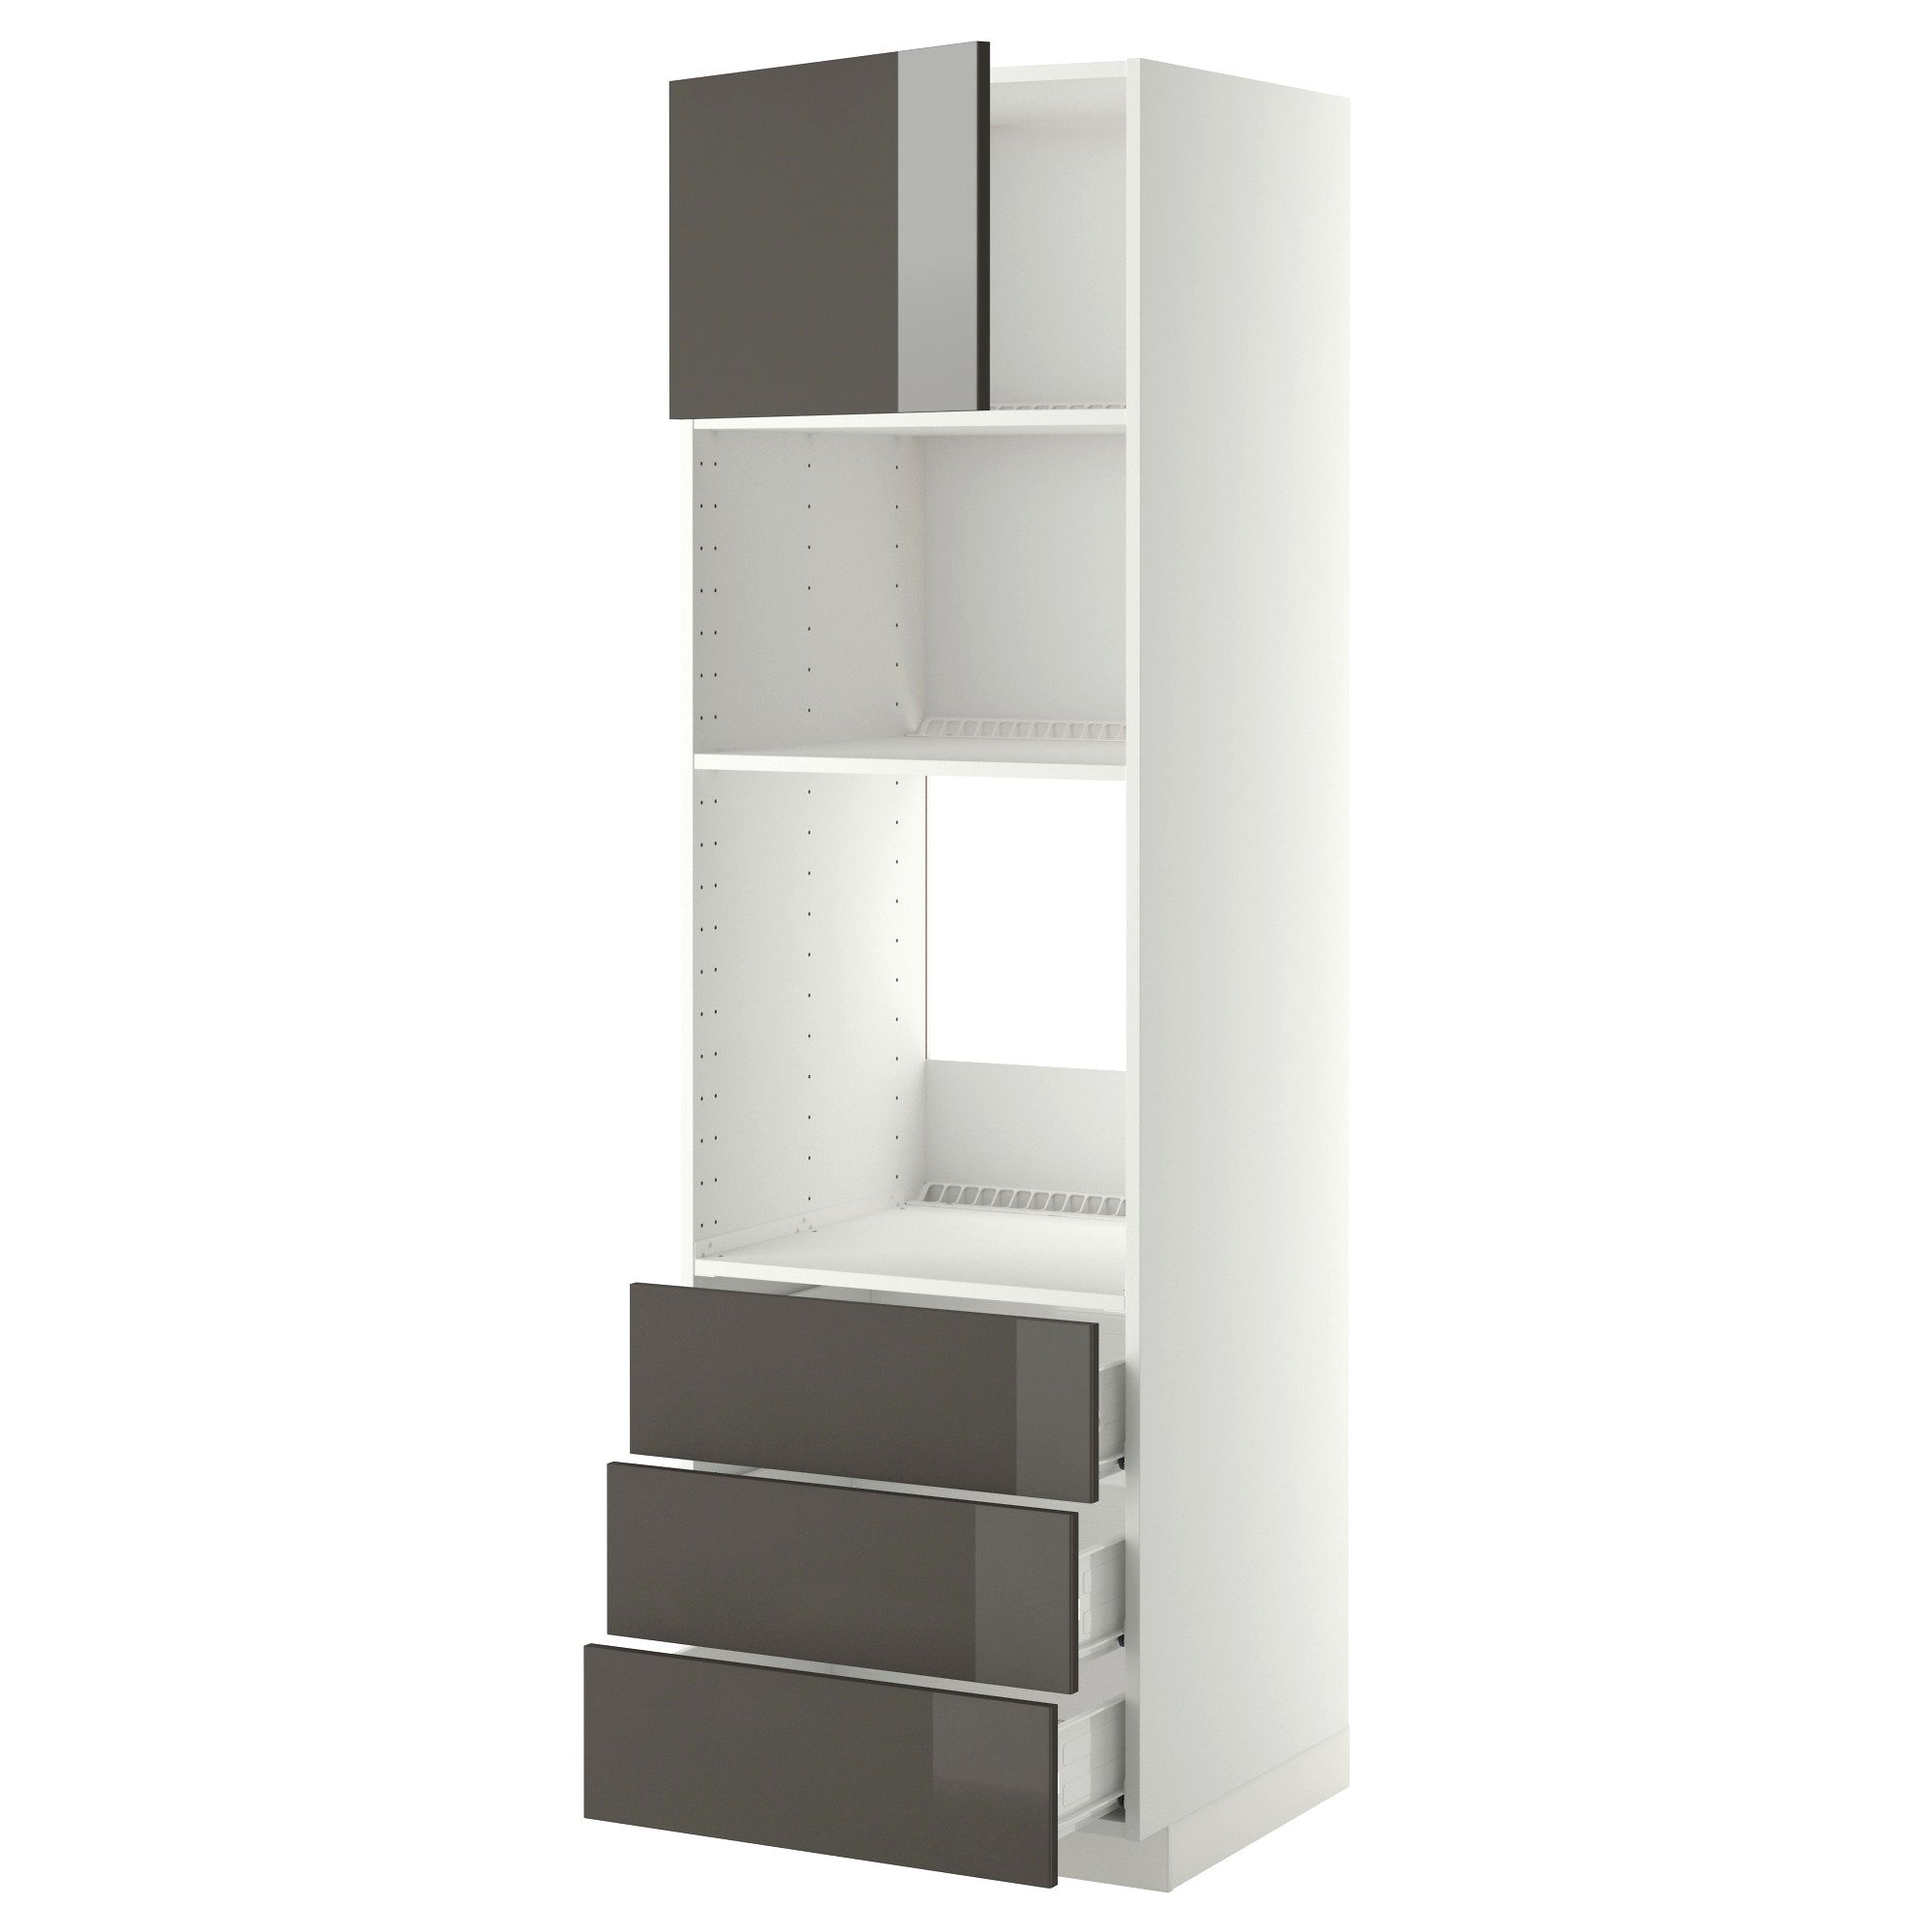 Meuble Cuisine Four Encastrable Trick In 2020 Cabinet Tall Cabinet Storage Kitchen Cabinets